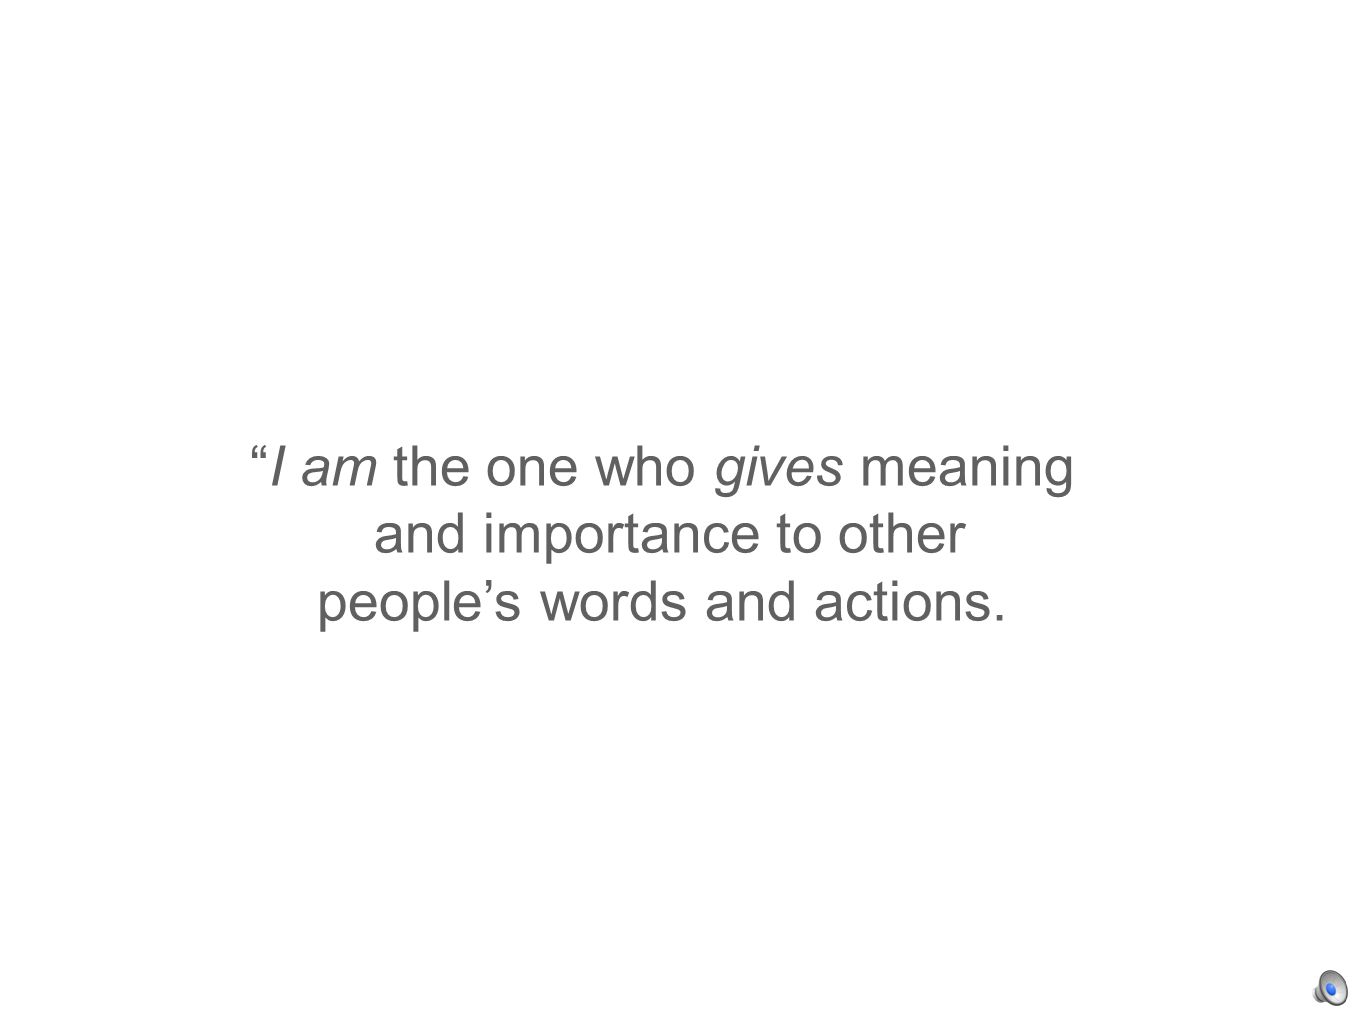 I am the one who gives meaning and importance to other peoples words and actions.